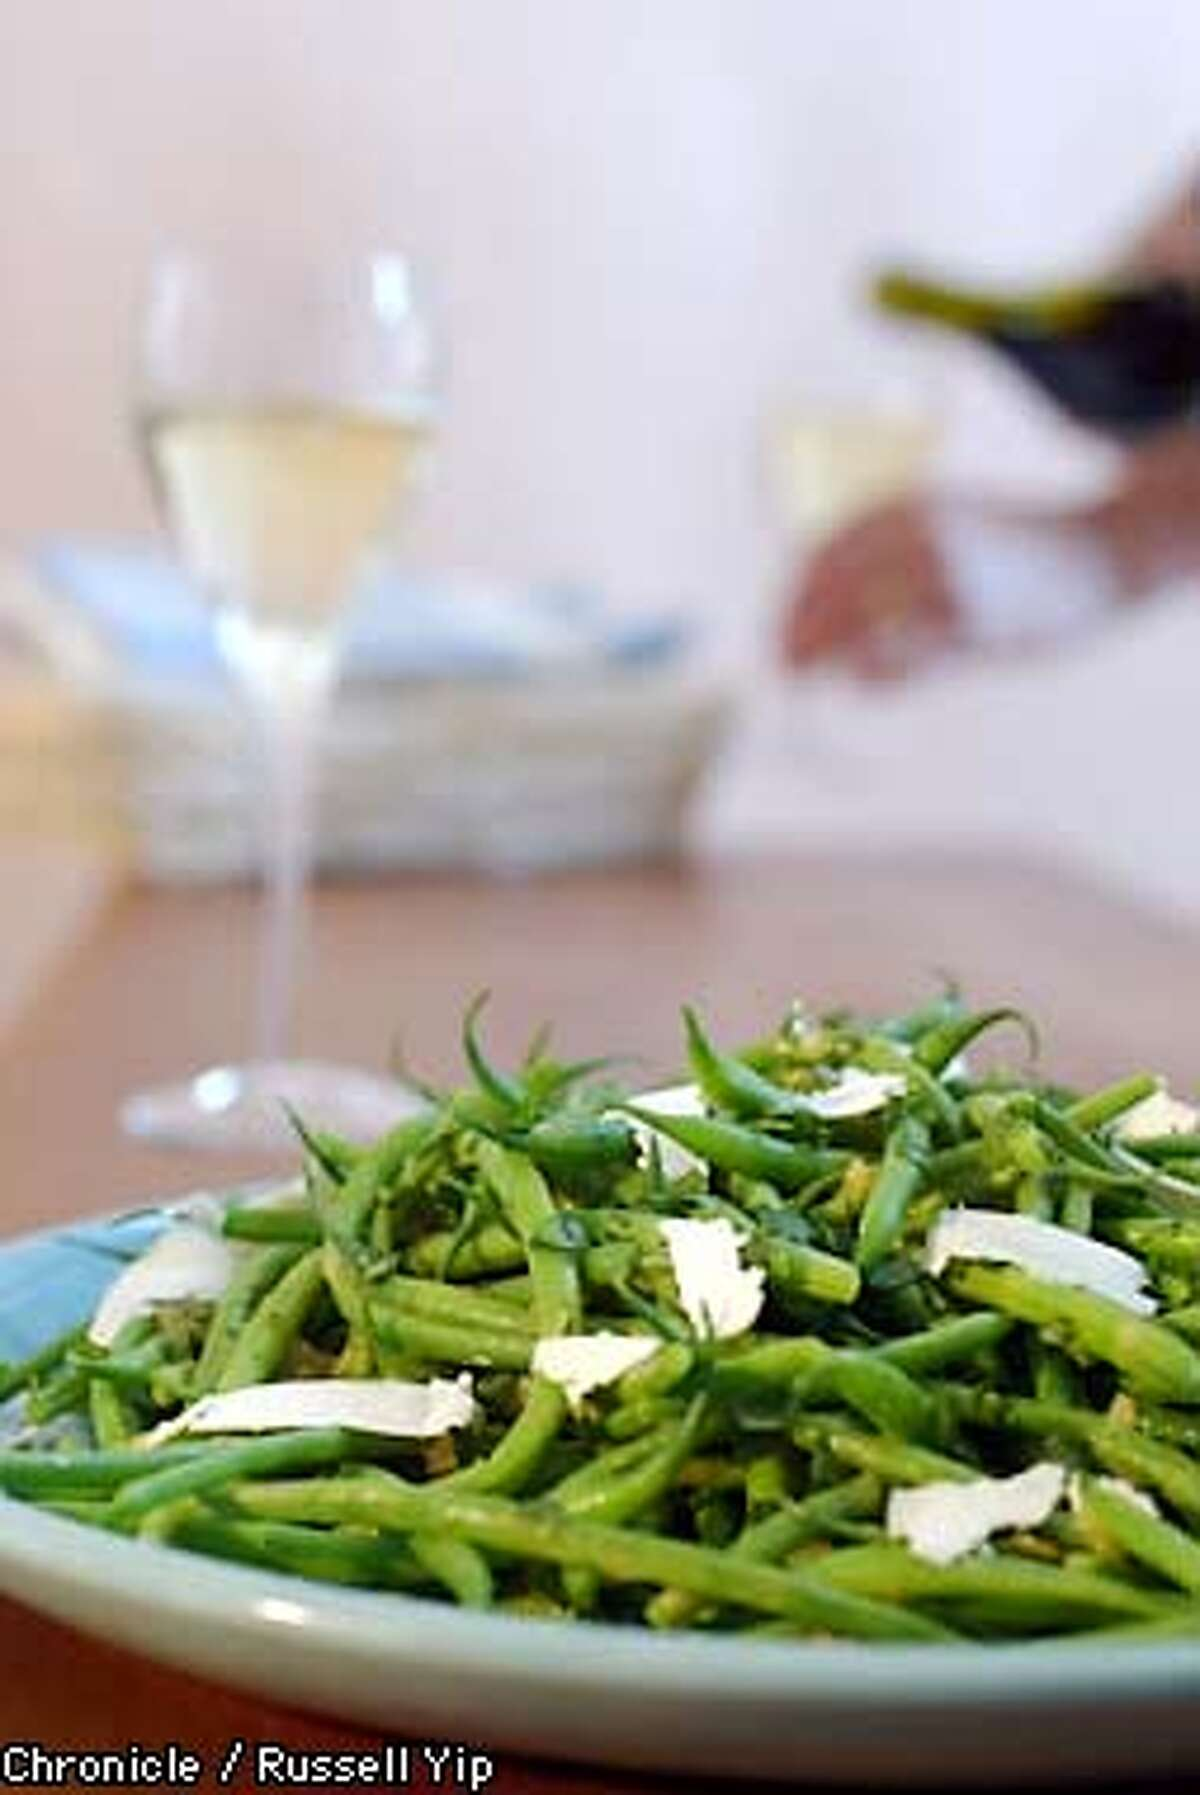 Haricot vertes with vinagarette. (Green bean salad which pairs with sauvignon blanc. PHOTO BY RUSSELL YIP/THE CHRONICLE; STYLING BY ETHEL BRENNAN